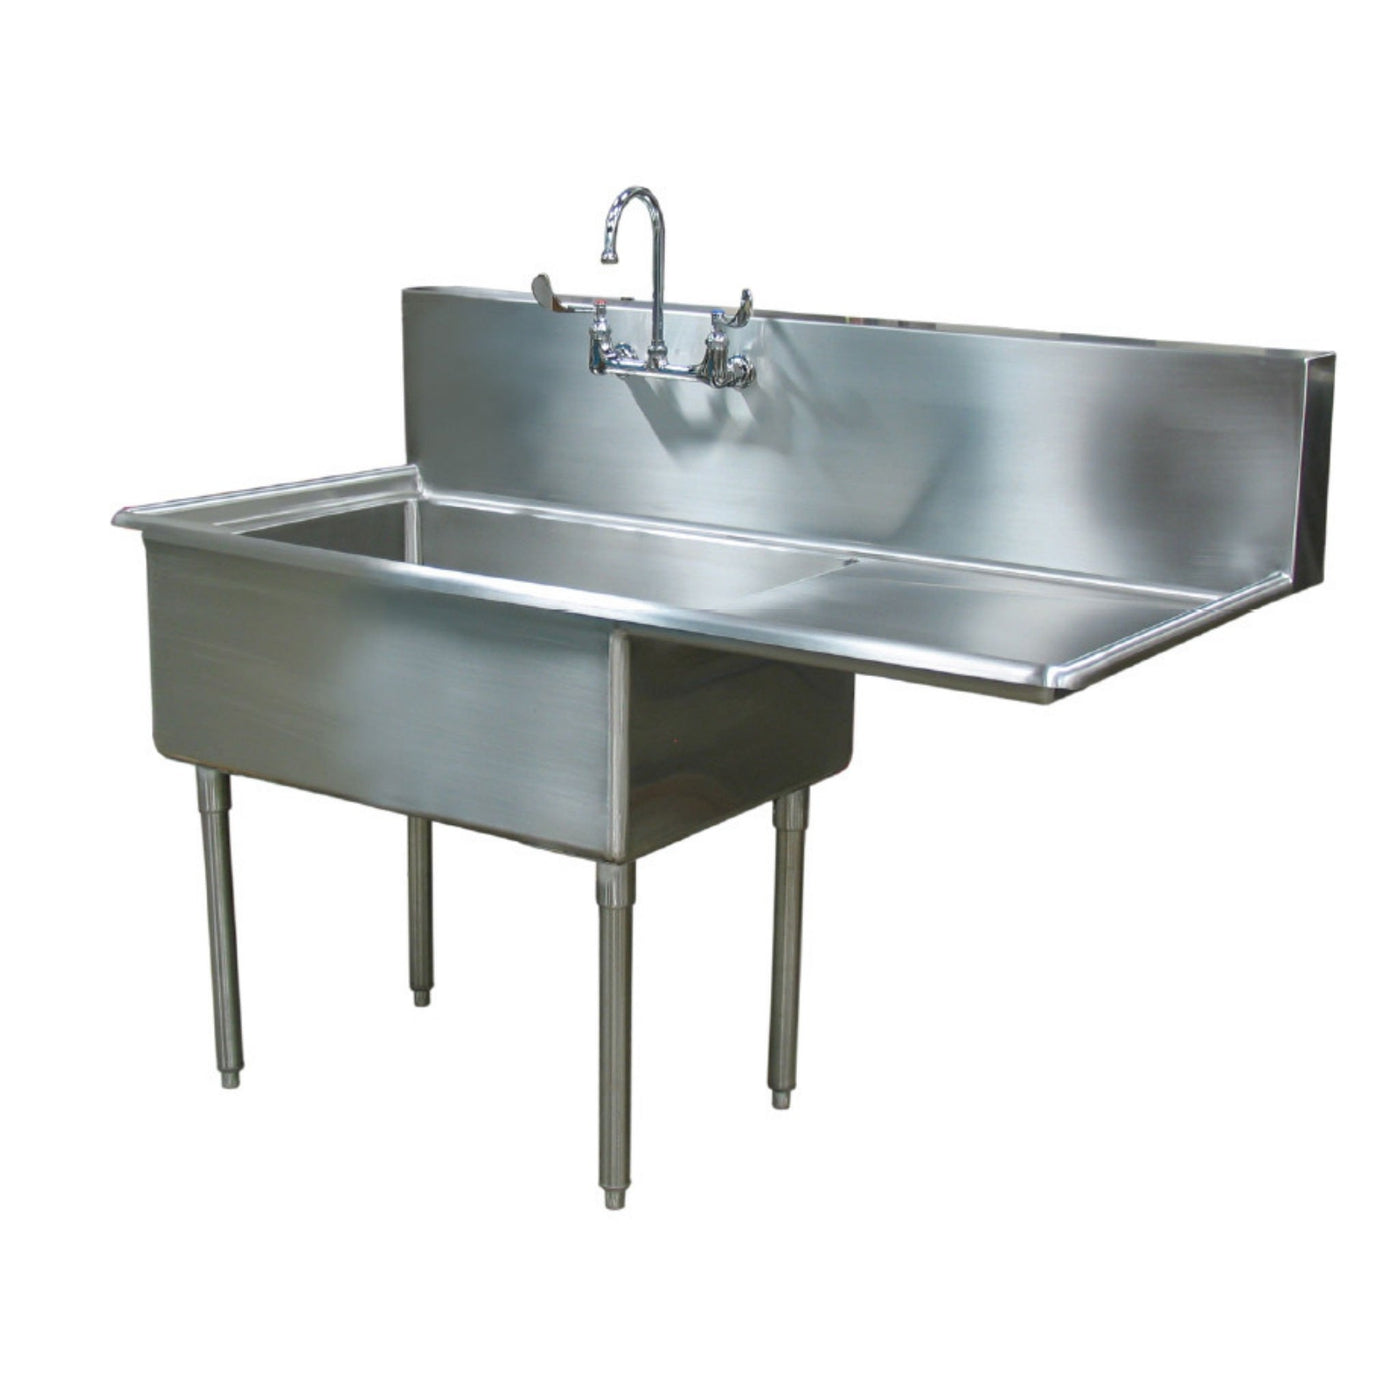 Scullery Sink (Single Drain Board)-Sink Station-Mortech Manufacturing Company Inc. Quality Stainless Steel Autopsy, Morgue, Funeral Home, Necropsy, Veterinary / Anatomy, Dissection Equipment and Accessories